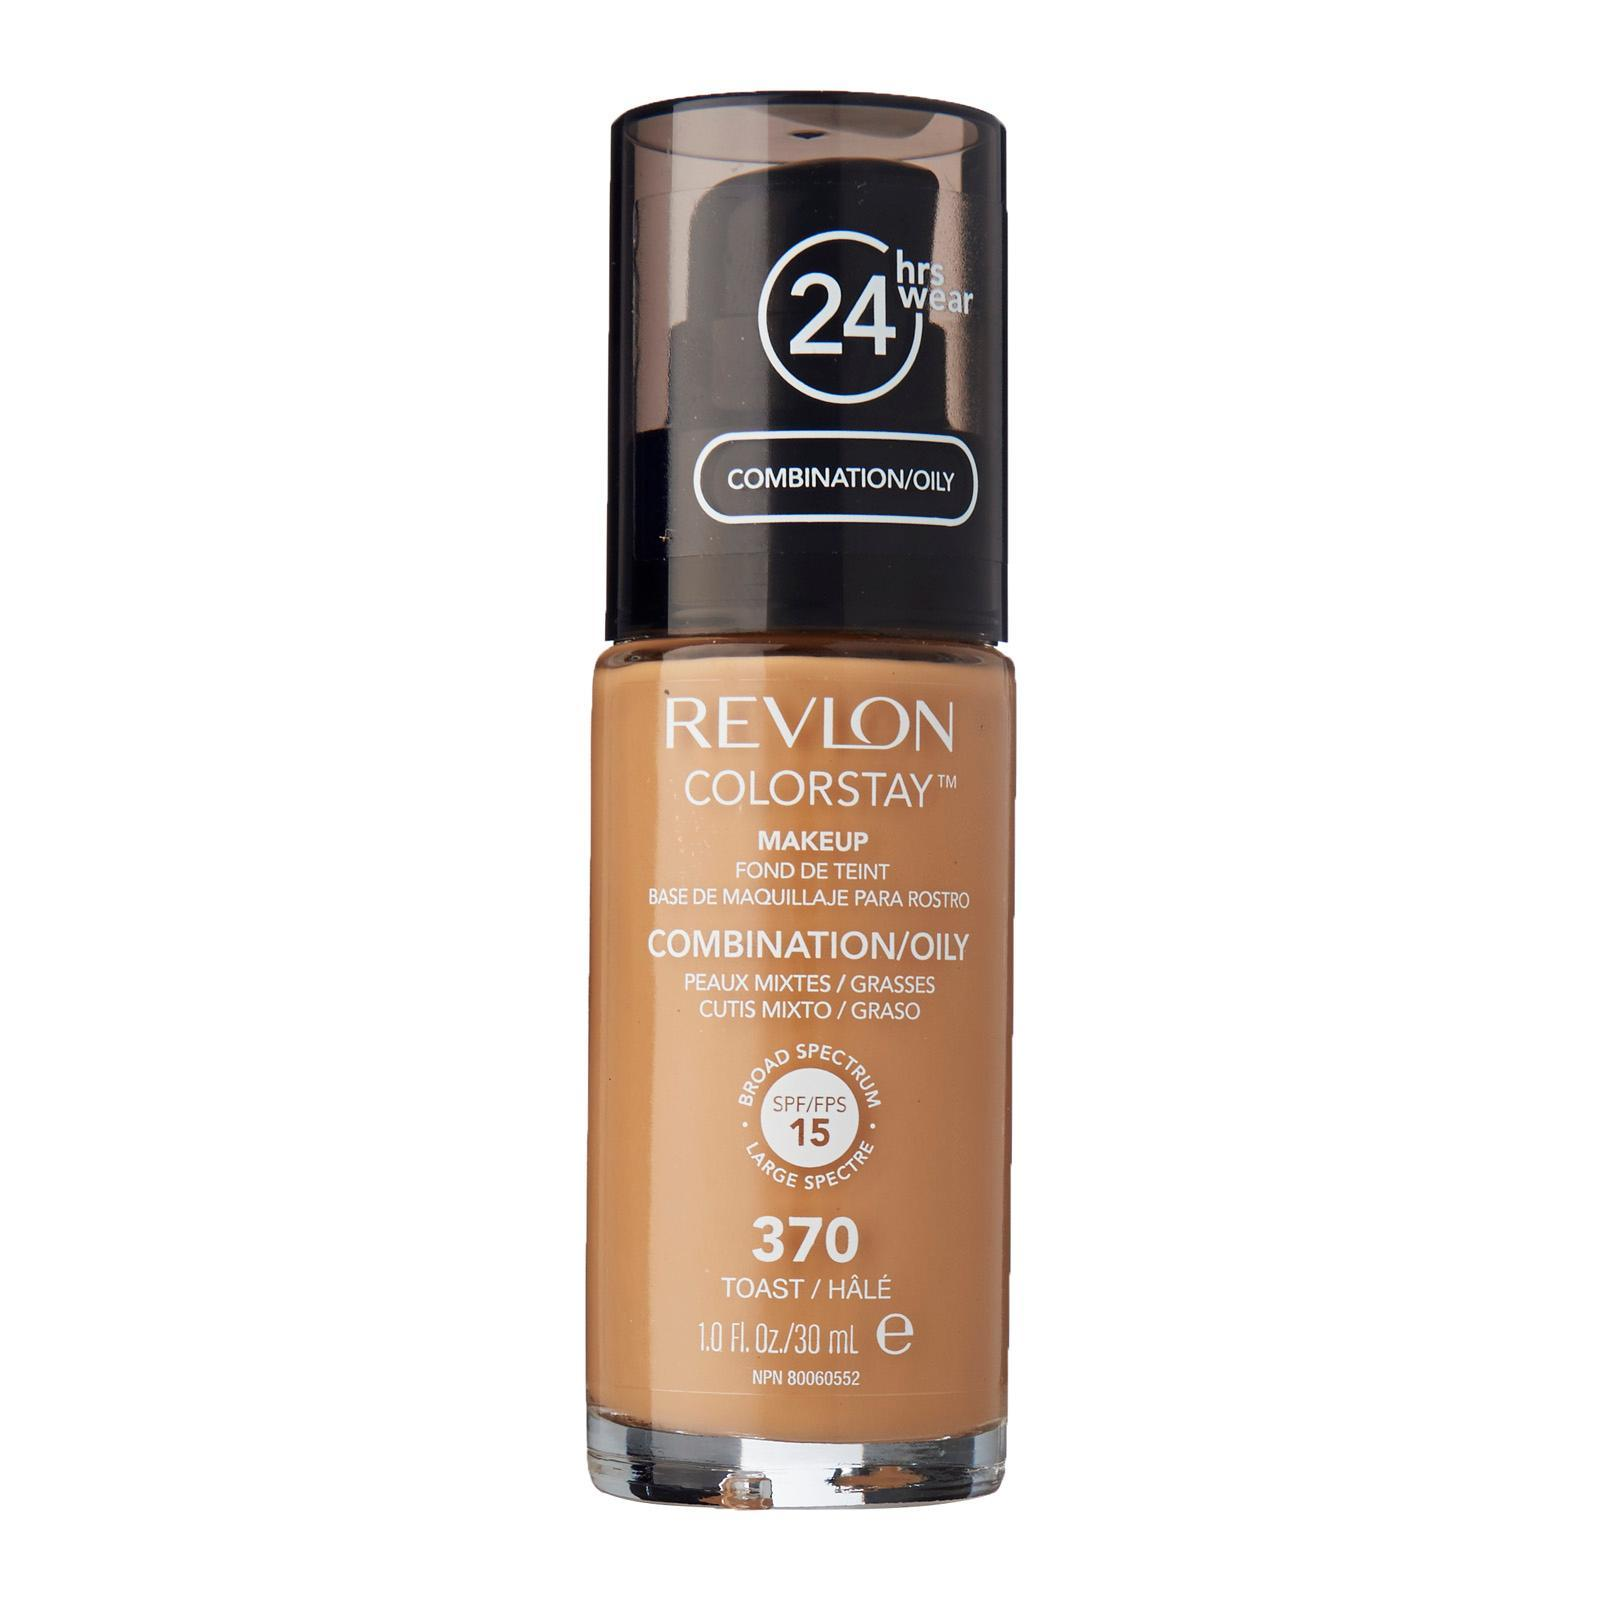 Revlon ColorStay Makeup for Combination/Oily Skin 370 Toast